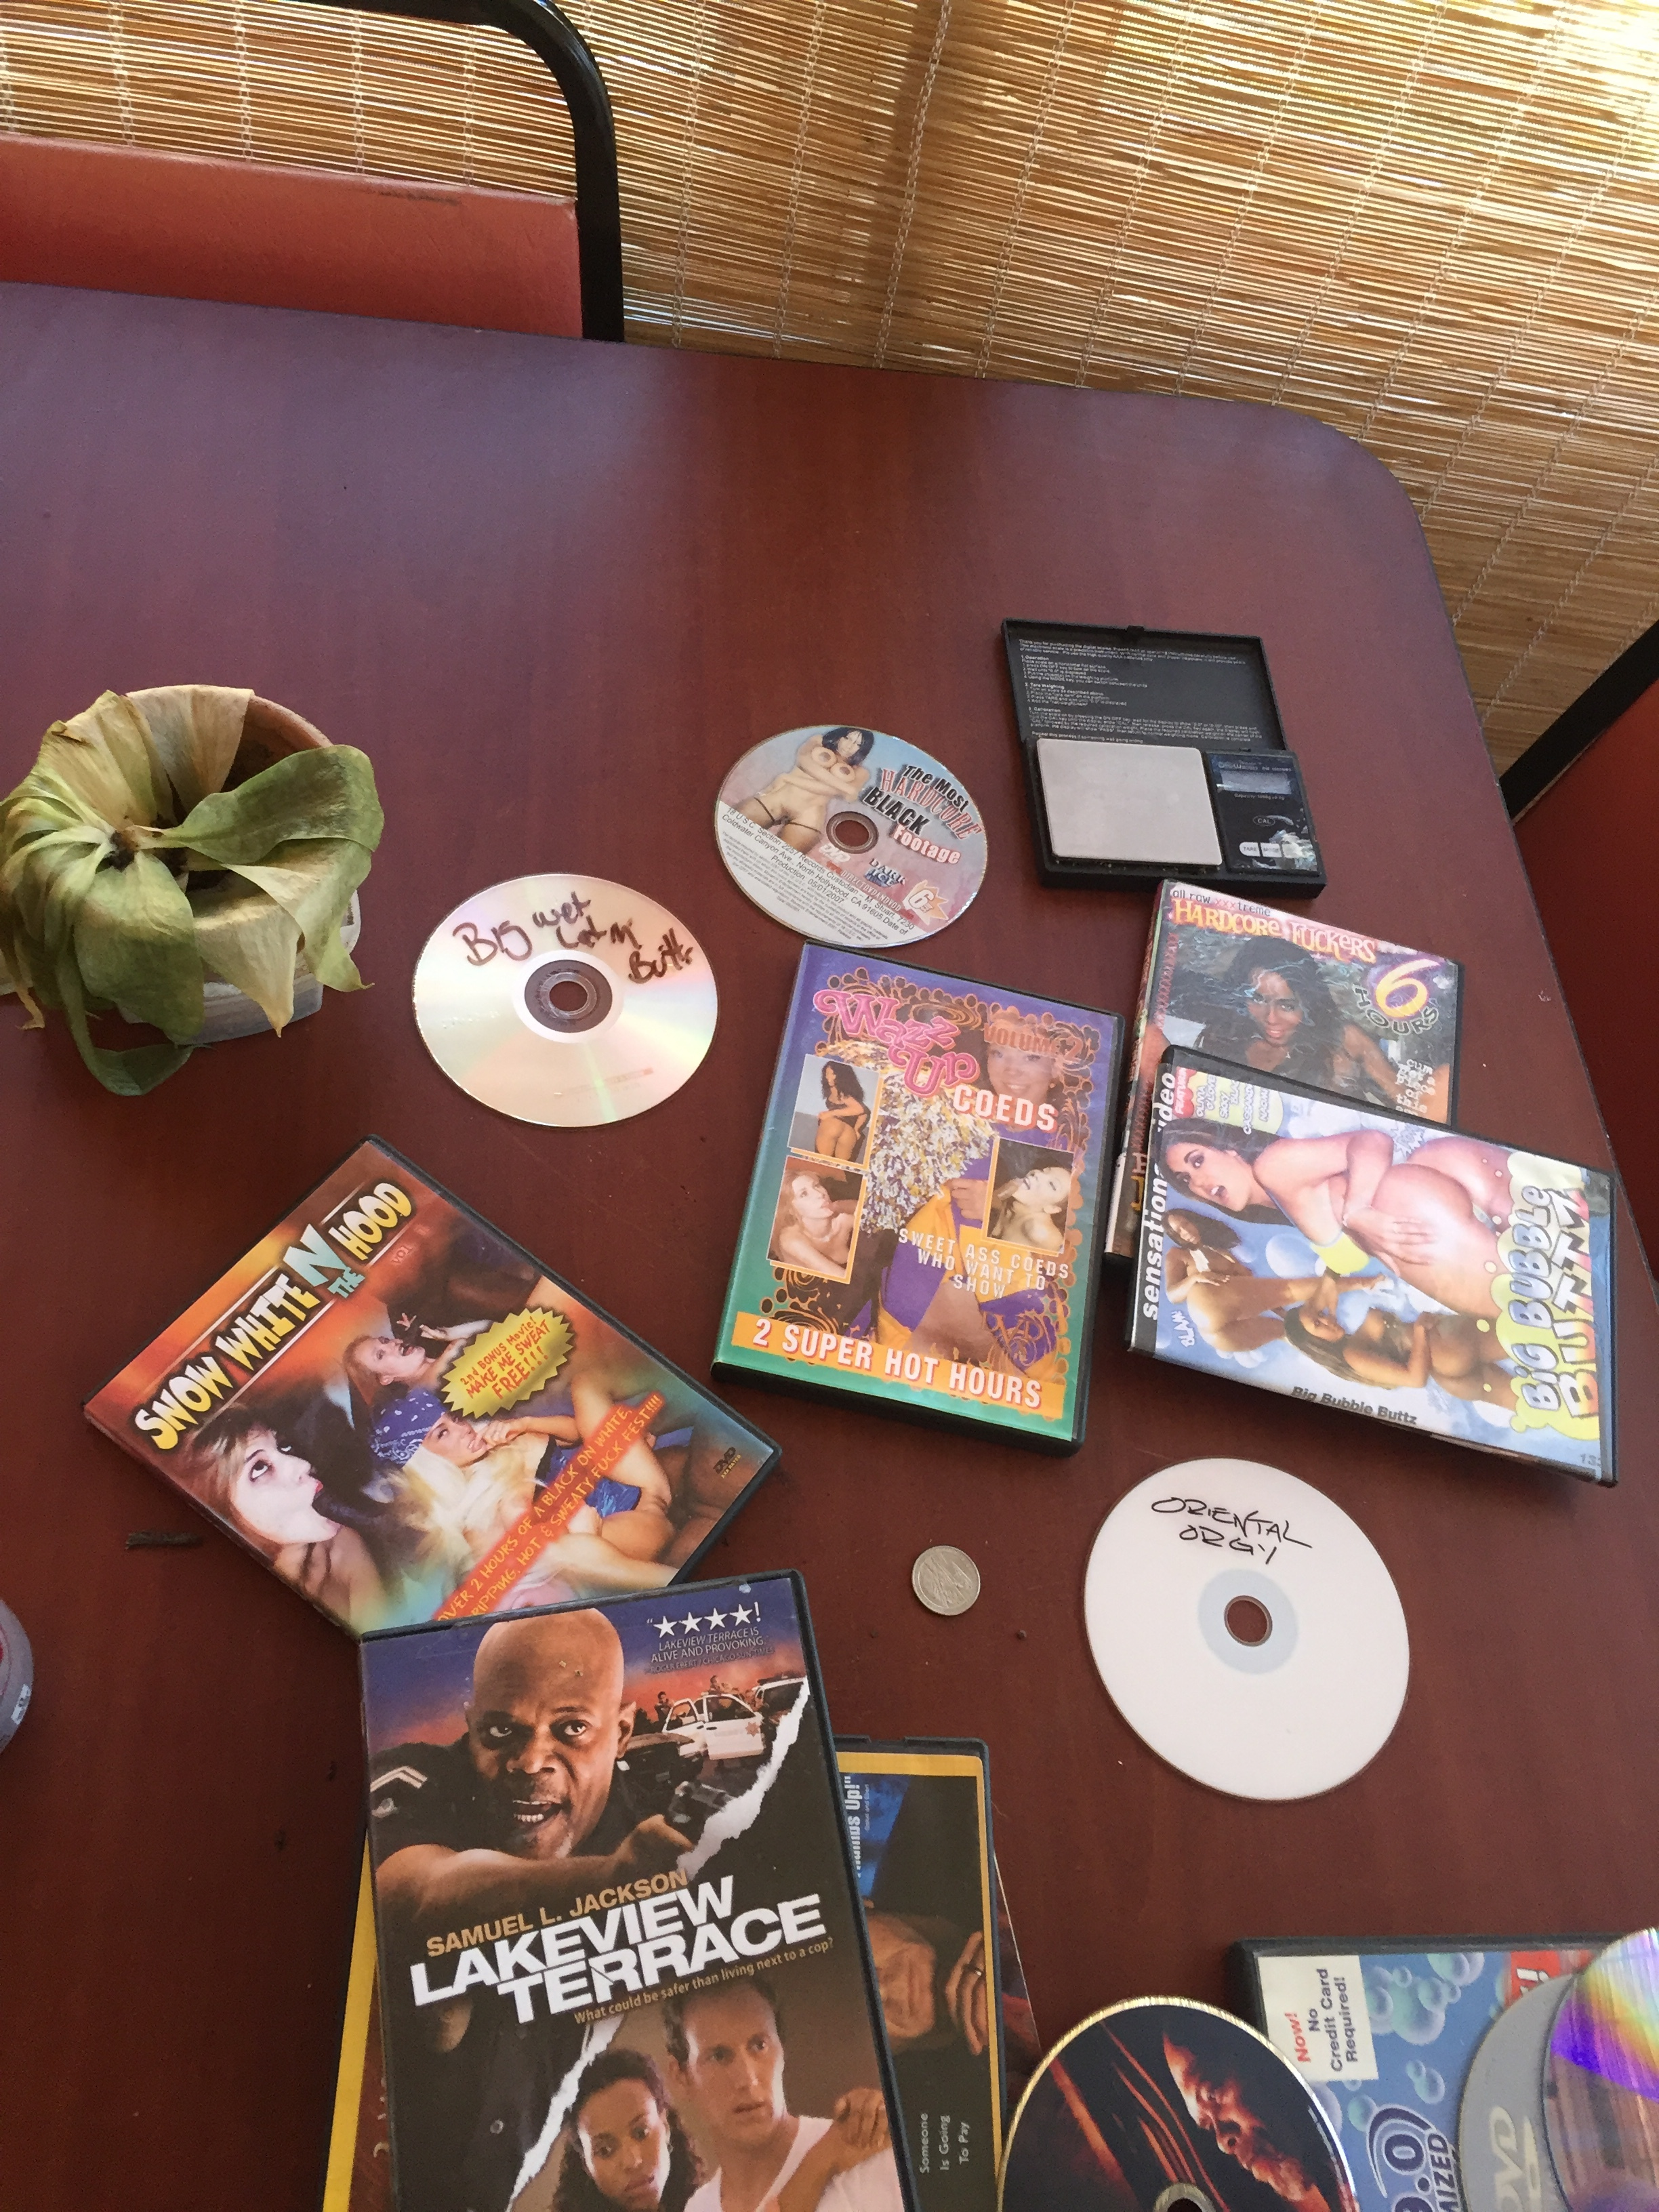 Of course there'd be the porn DVDs and weed scale left over.